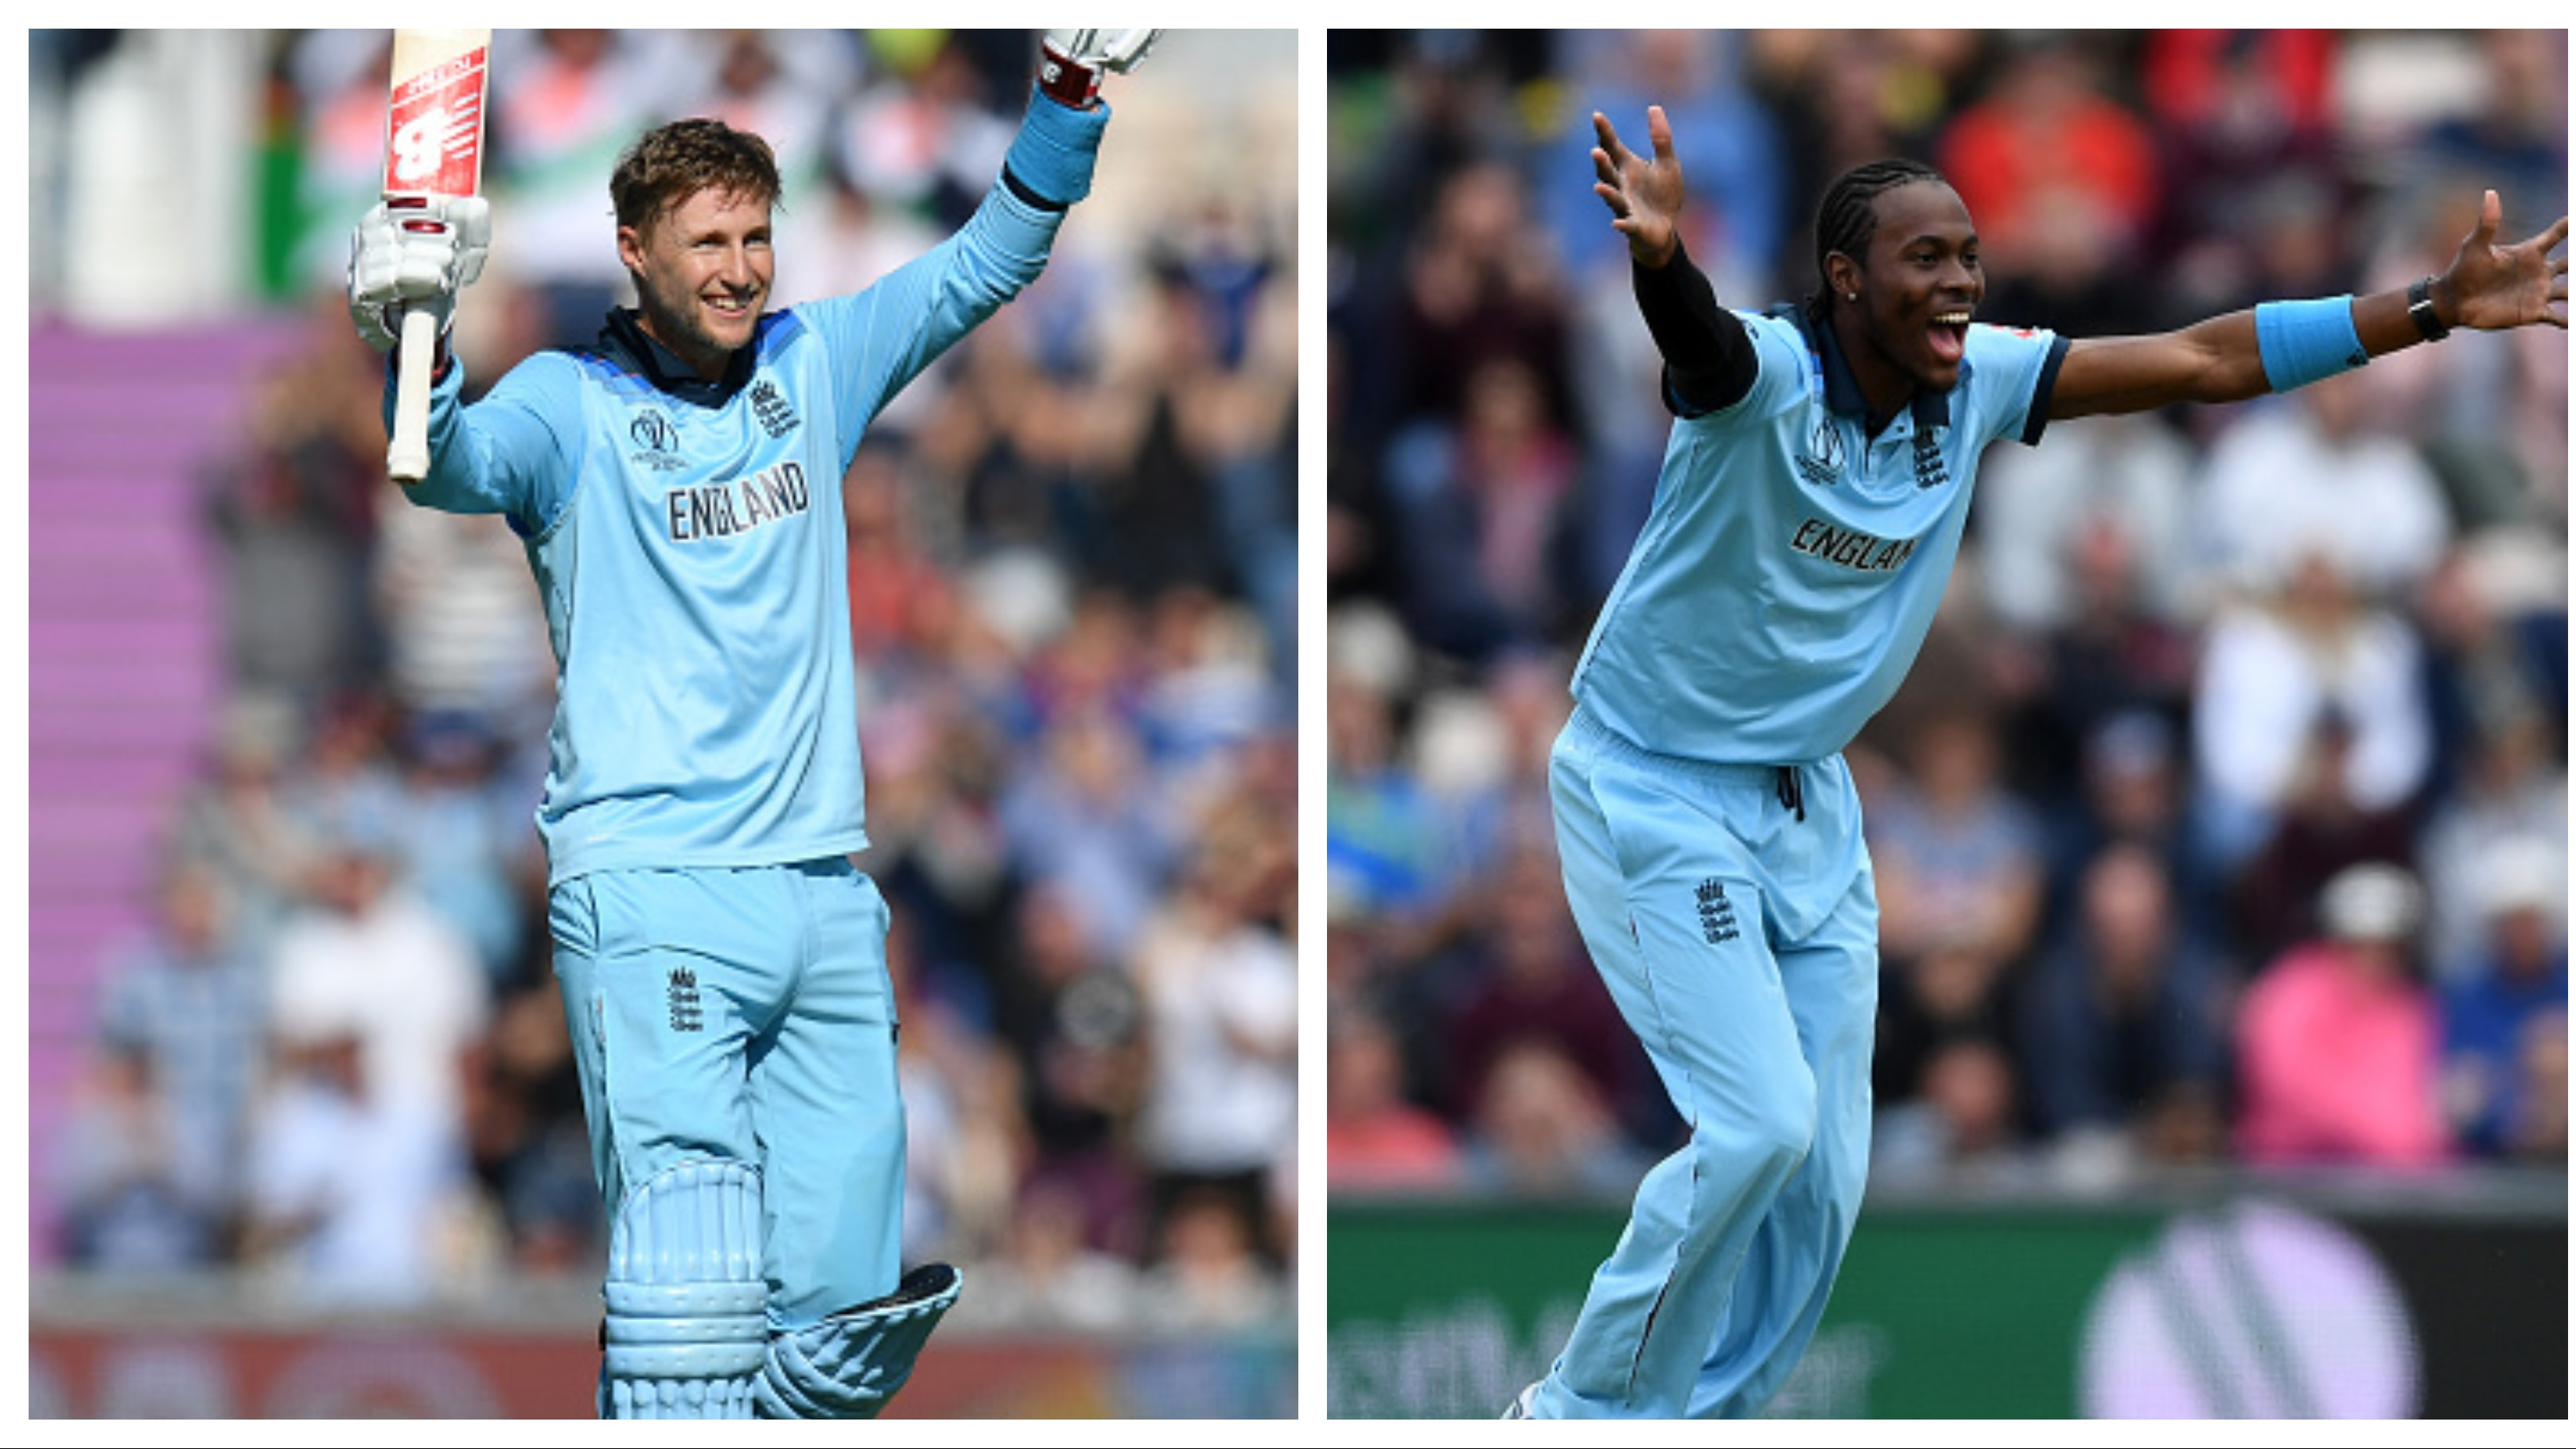 CWC 2019: ENG v WI - Jofra Archer, Joe Root help England rout West Indies at the Rose Bowl